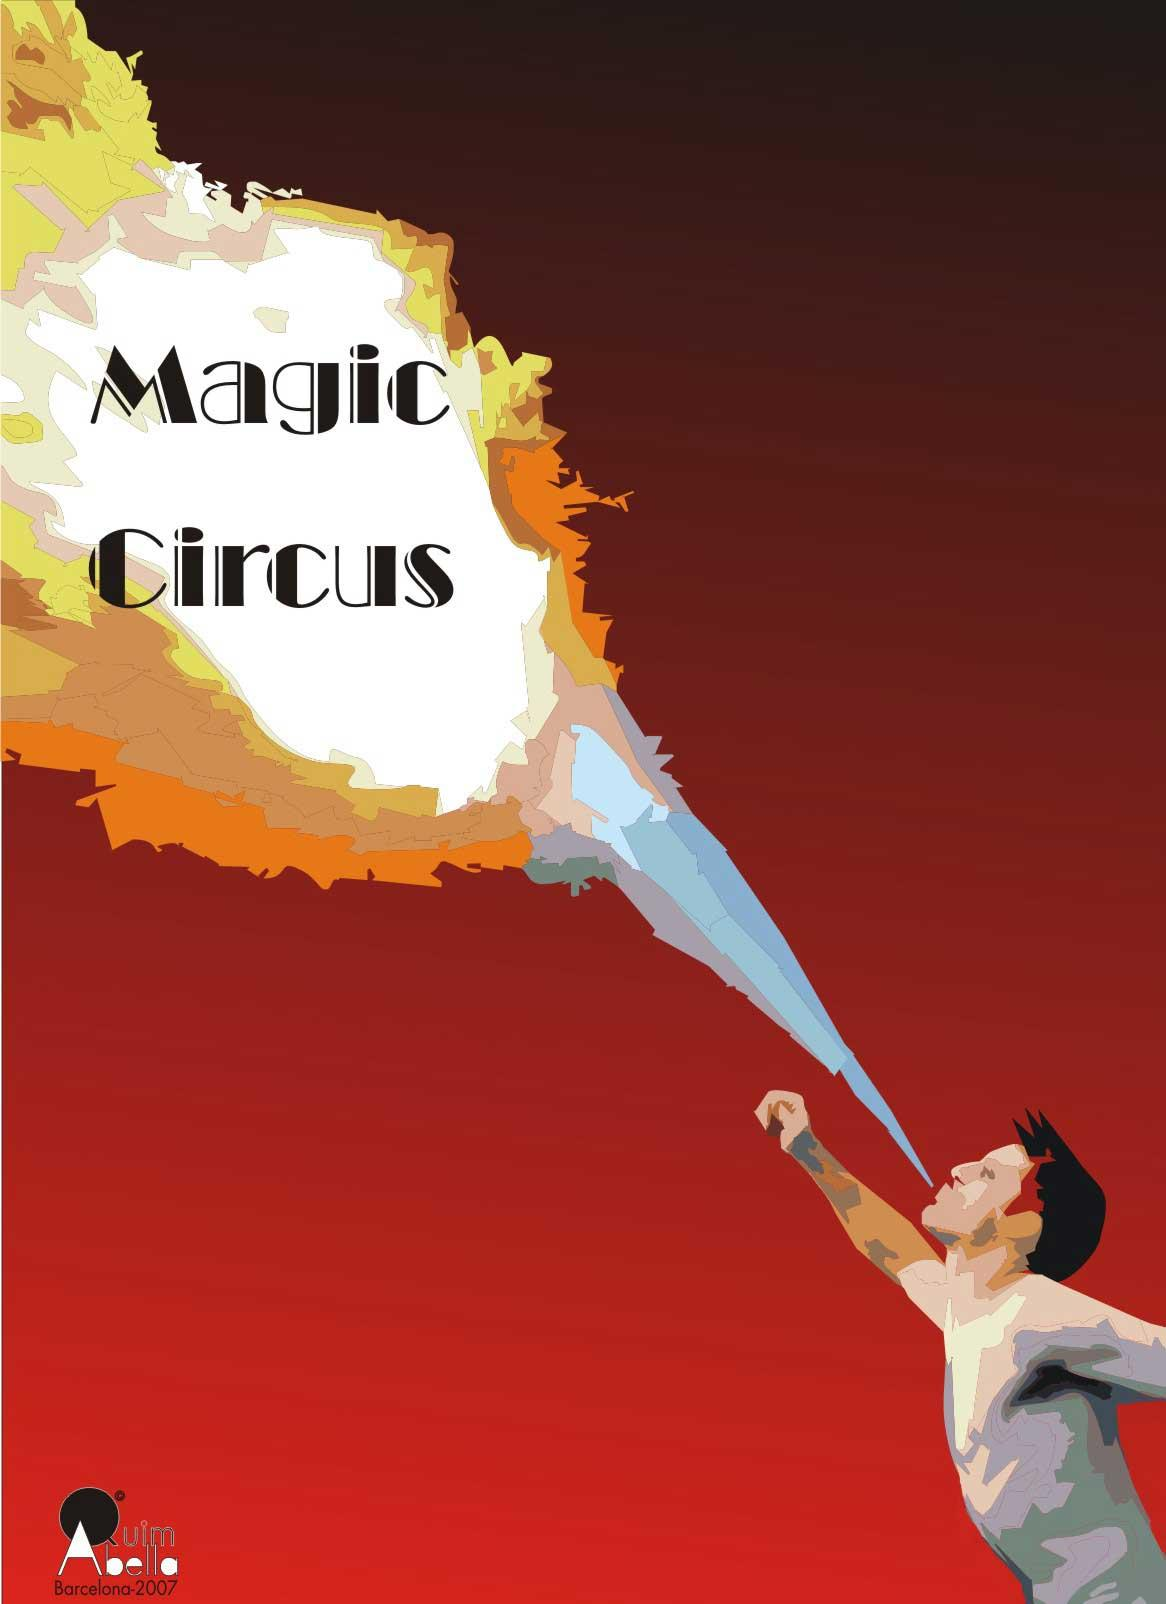 Magic Circus by quim2001